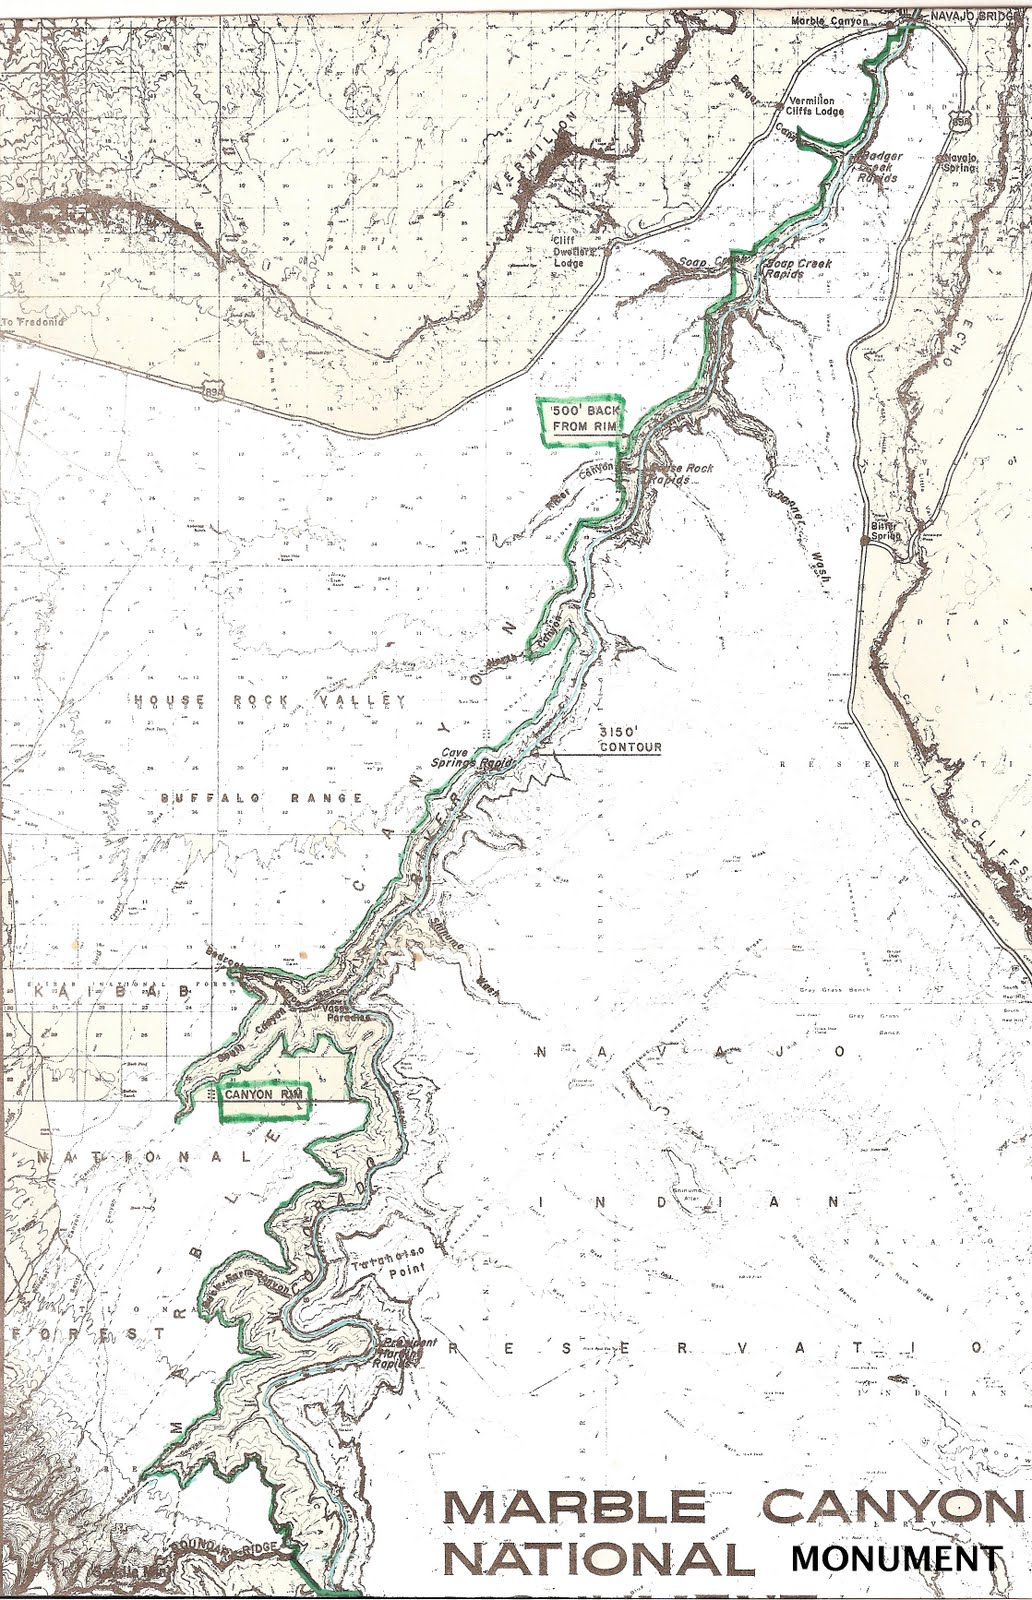 give me a line on a decent topo map anytime however here is what nps map drawers provided i added the west side green line